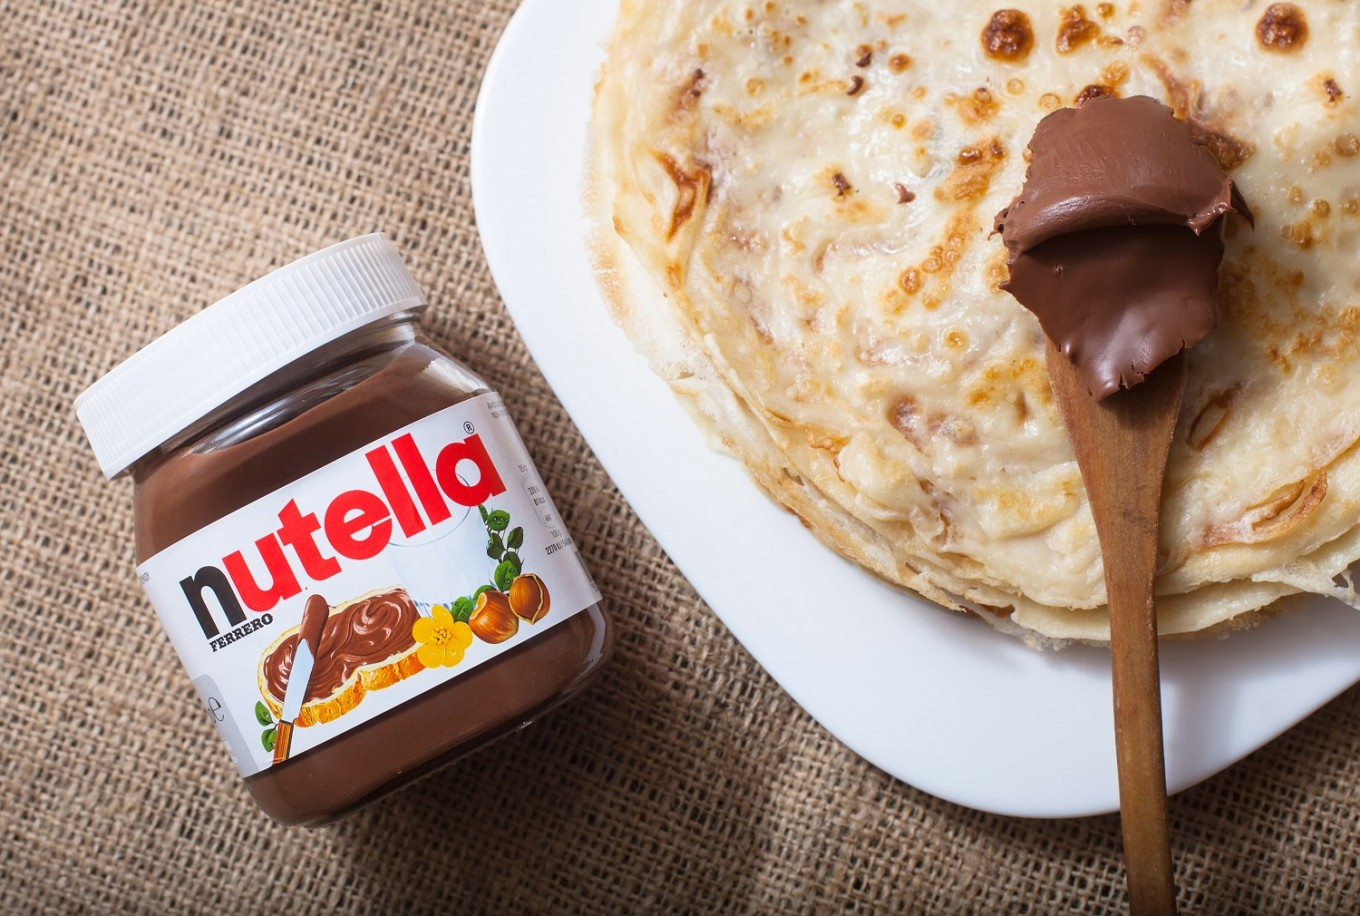 In New York, get your Nutella fix at this new café